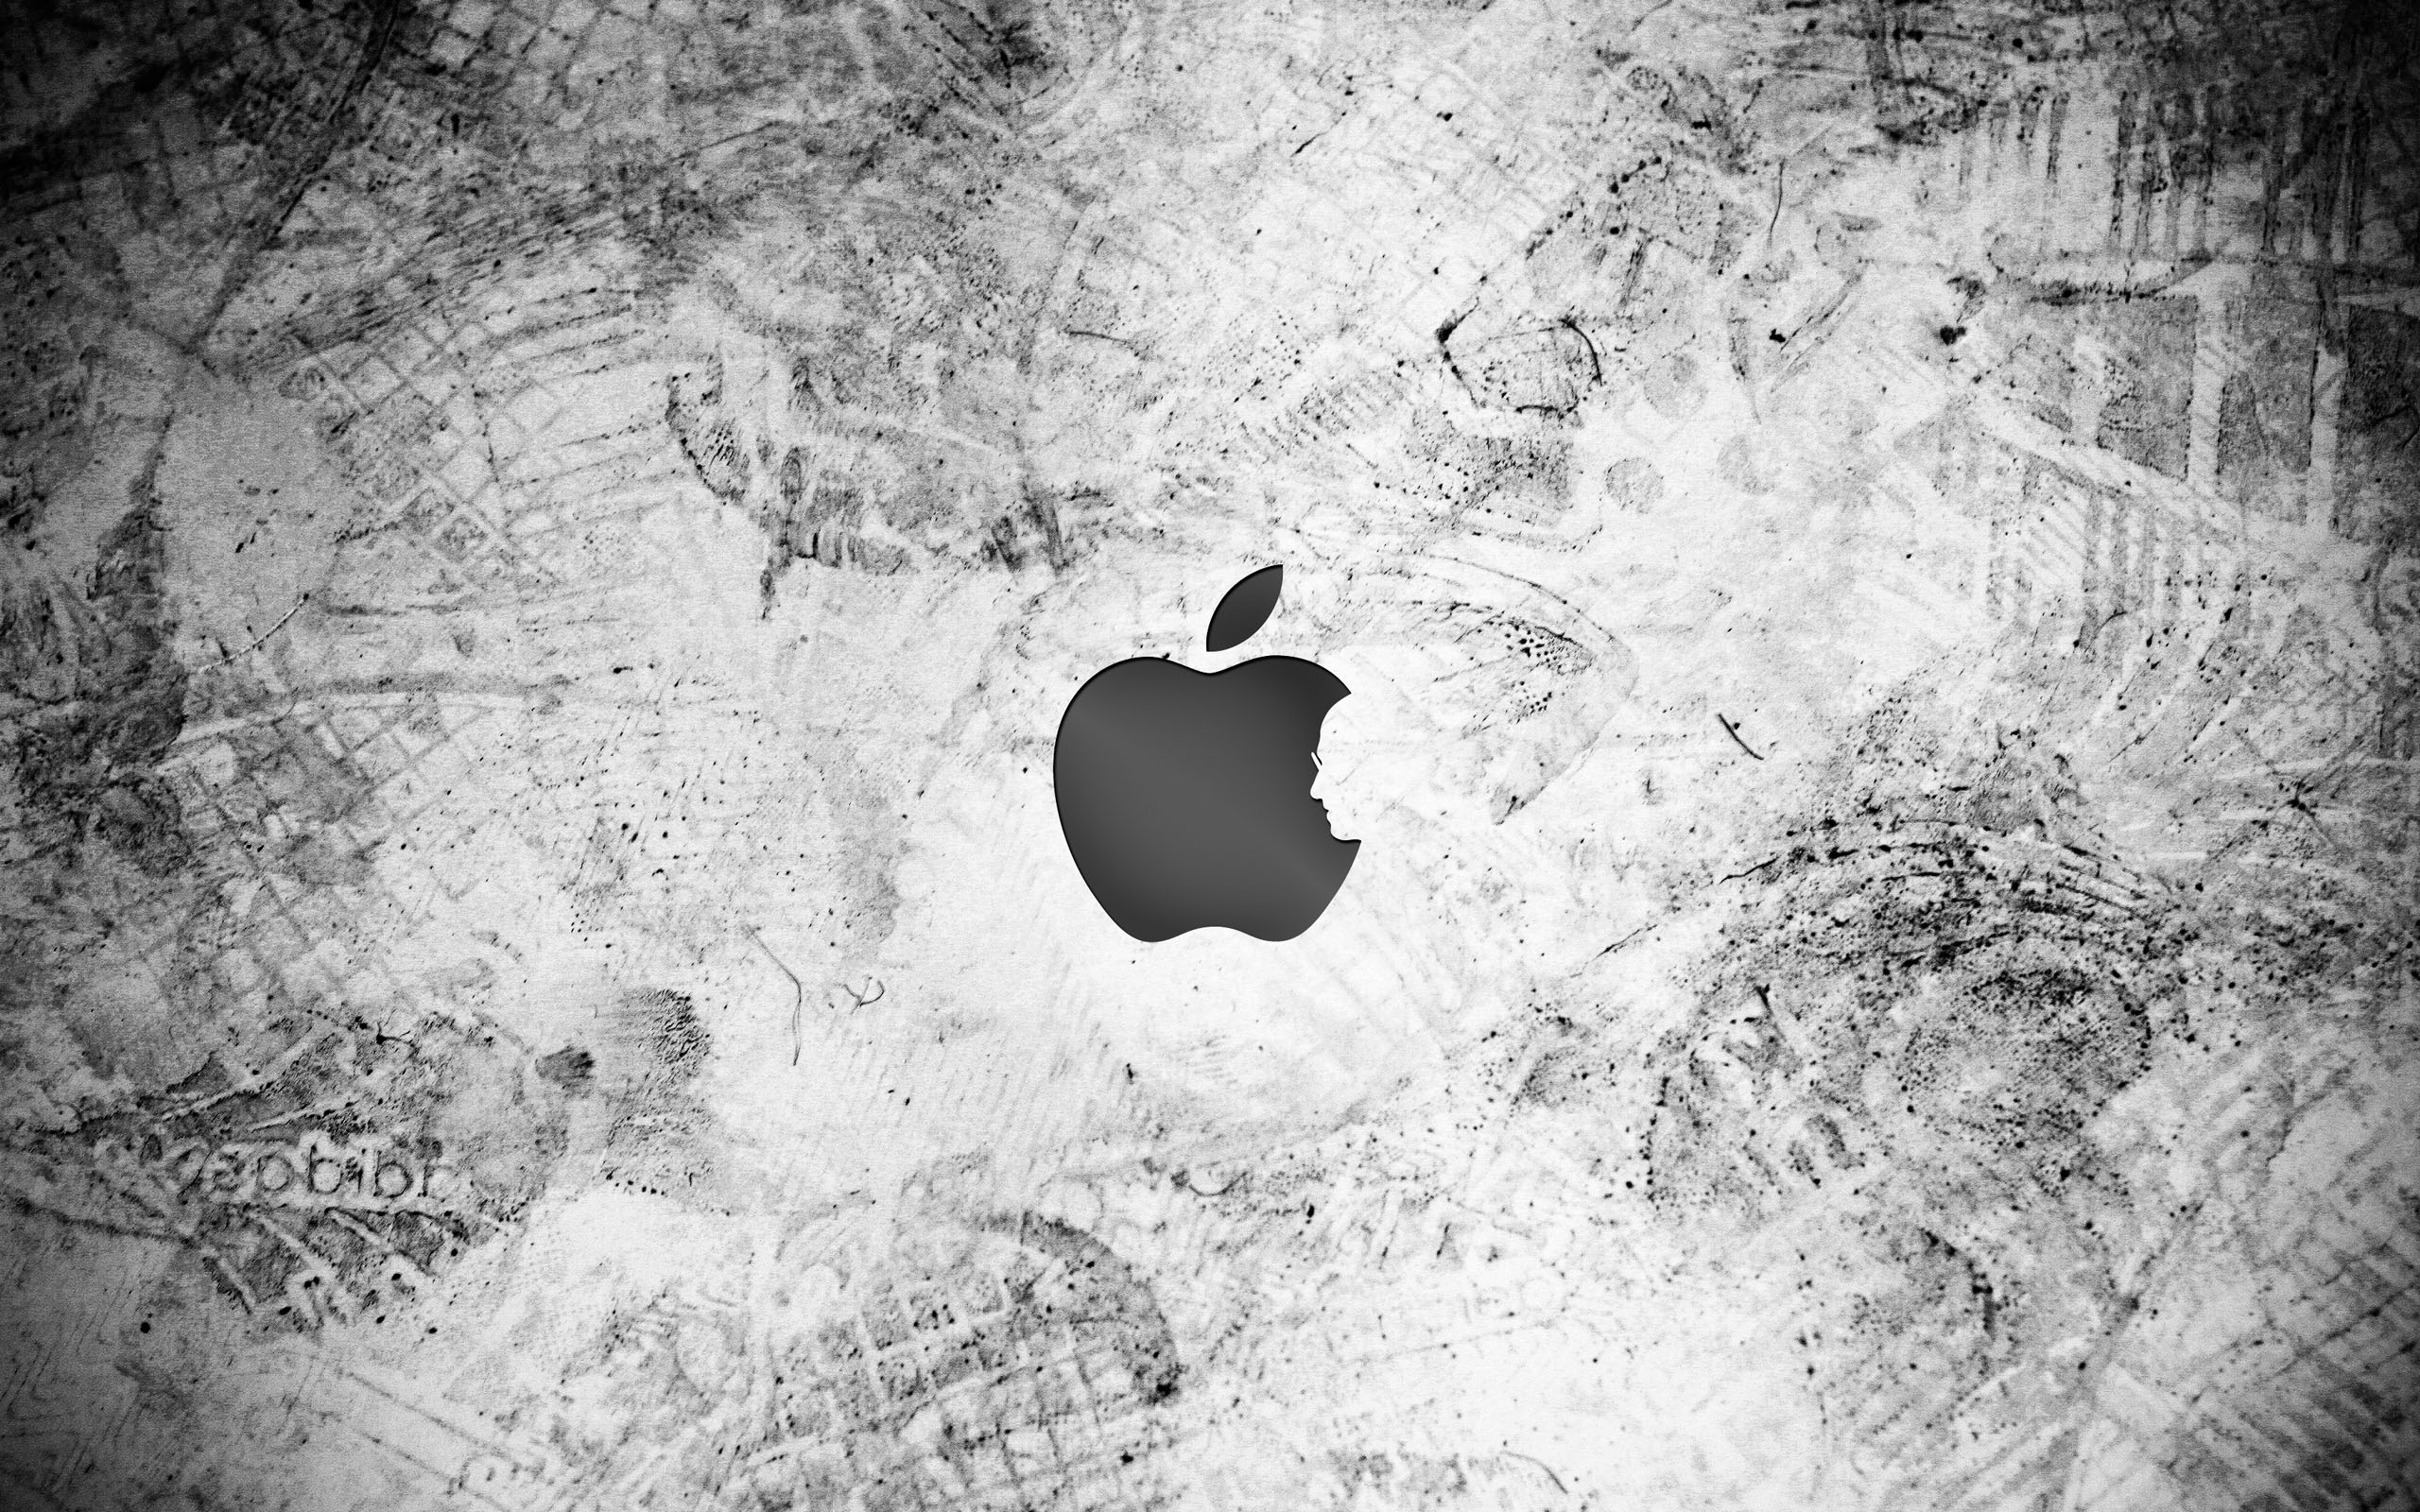 abstract apple background wallpaper | download cool hd wallpapers here.